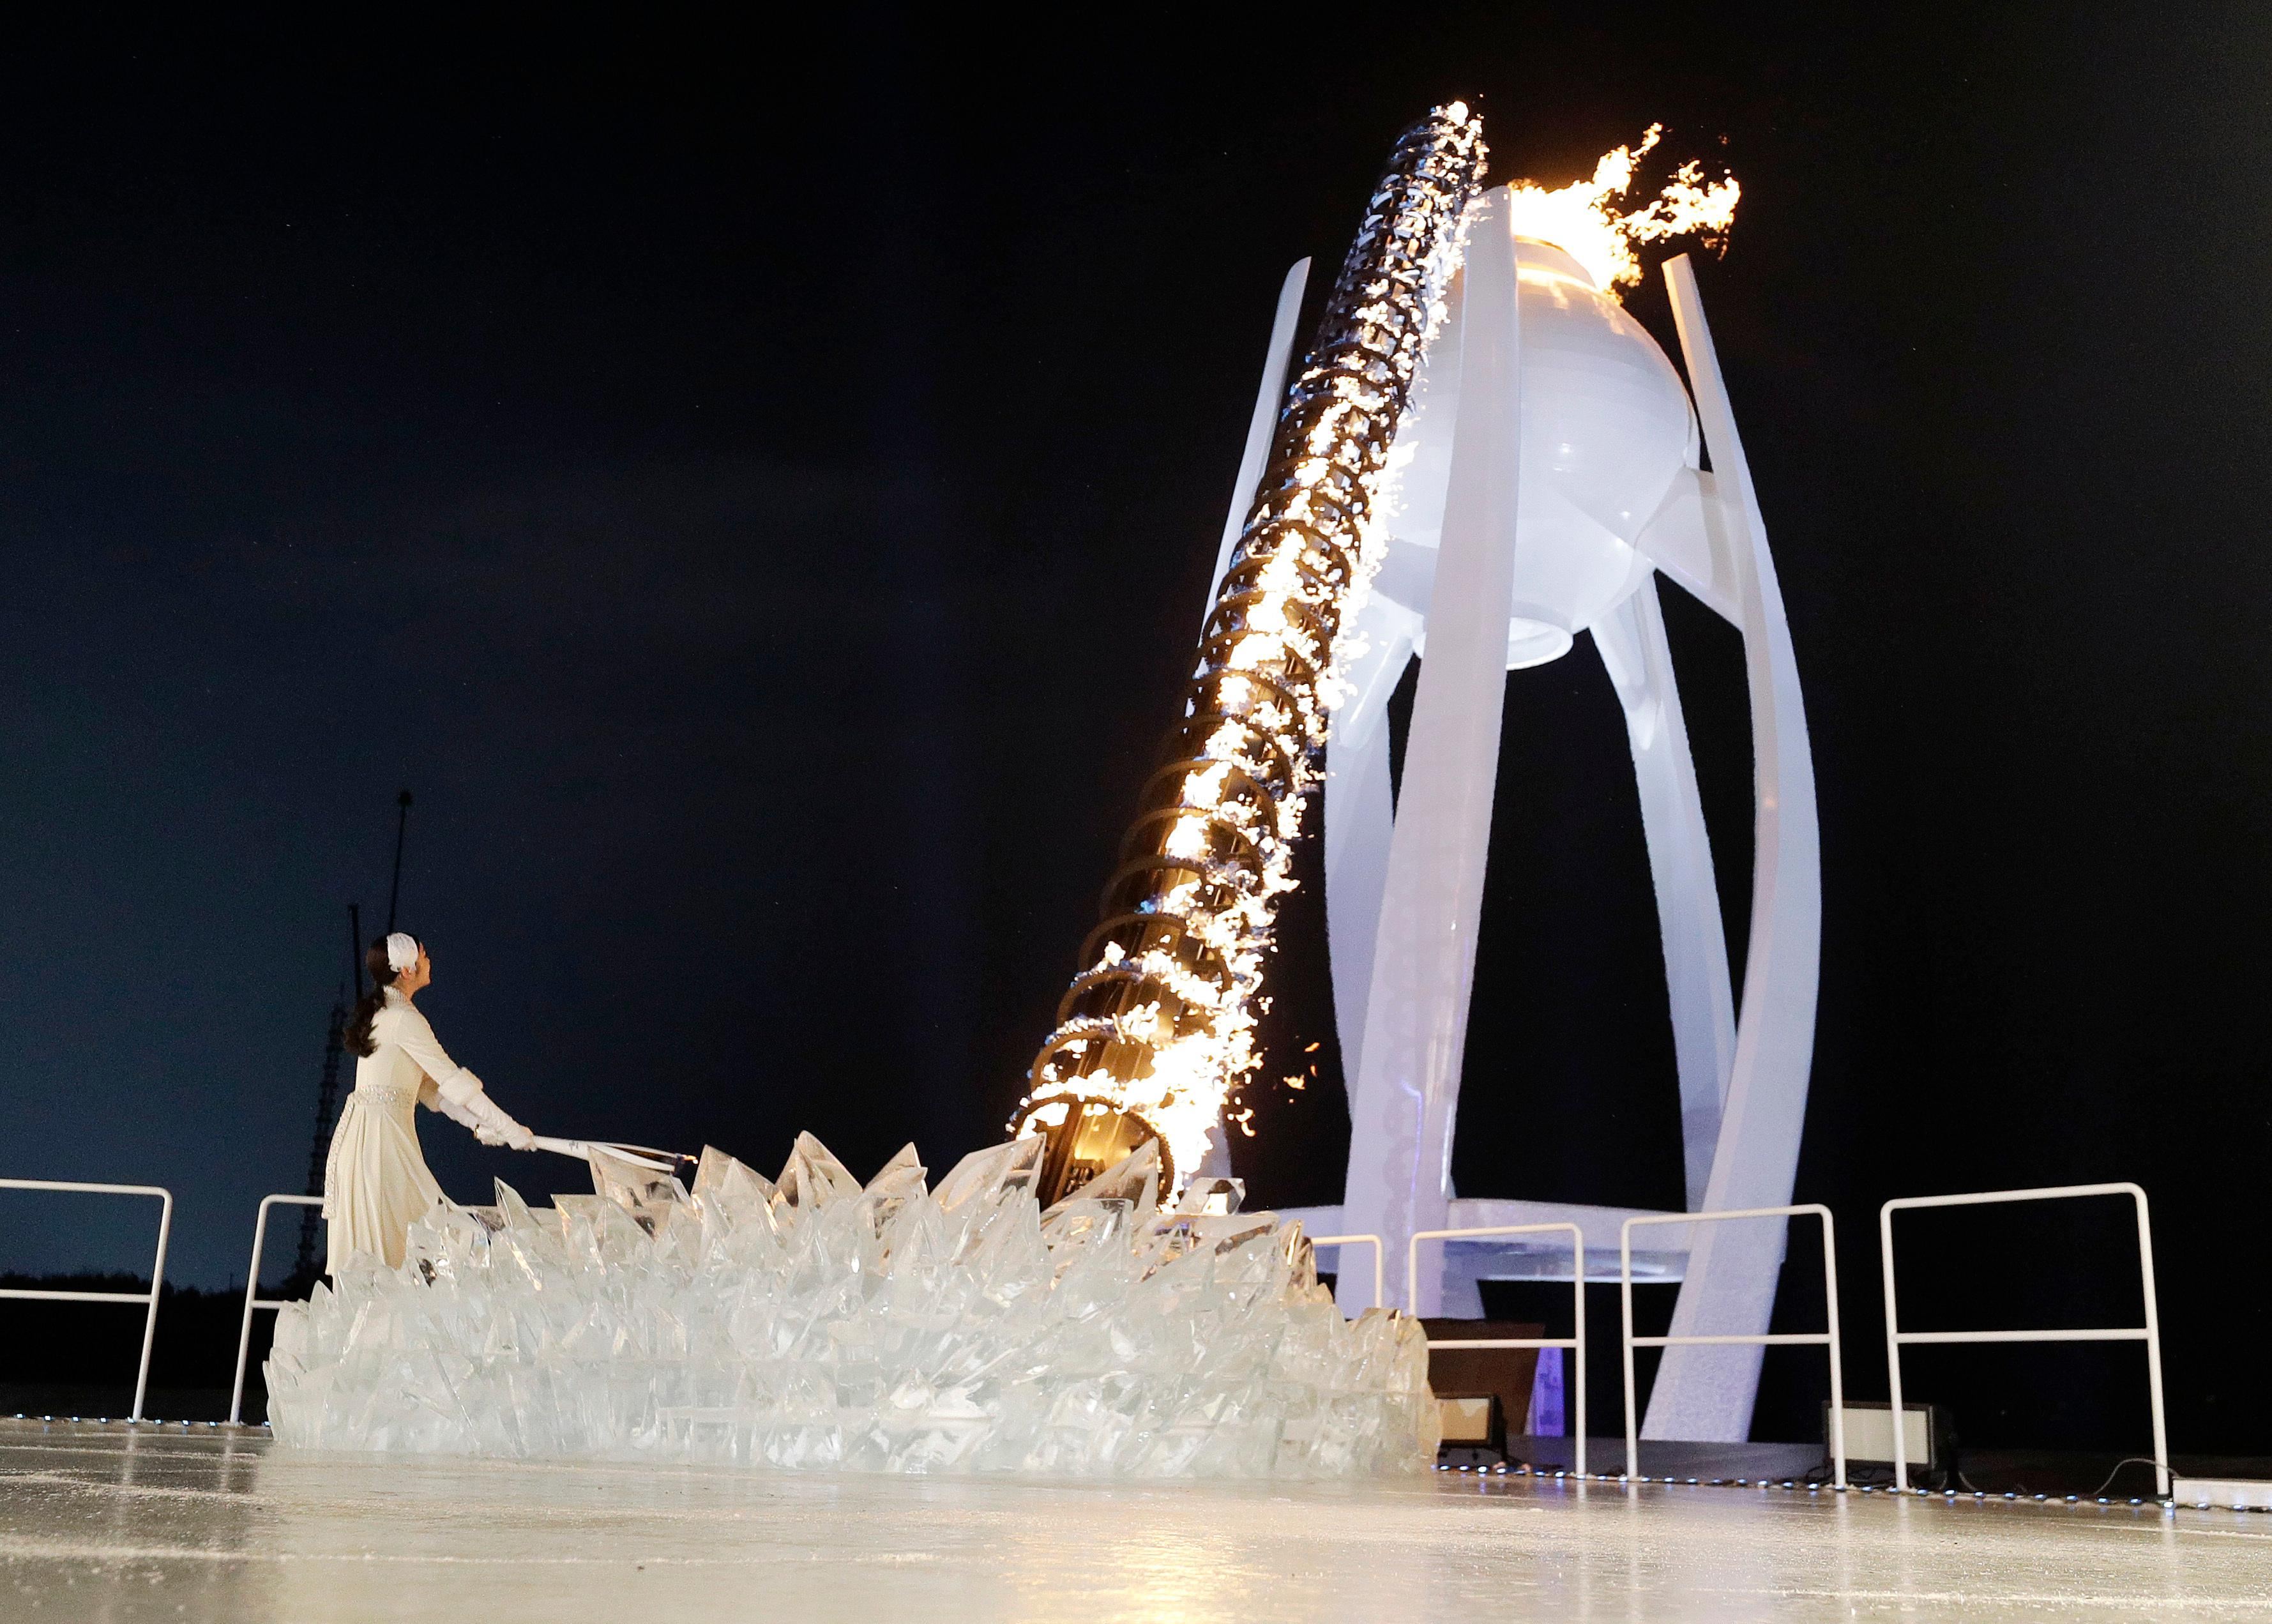 A torchbearer lights the Olympic flame during the opening ceremony of the 2018 Winter Olympics in Pyeongchang, South Korea, Friday, Feb. 9, 2018. (AP Photo/David J. Phillip,Pool)